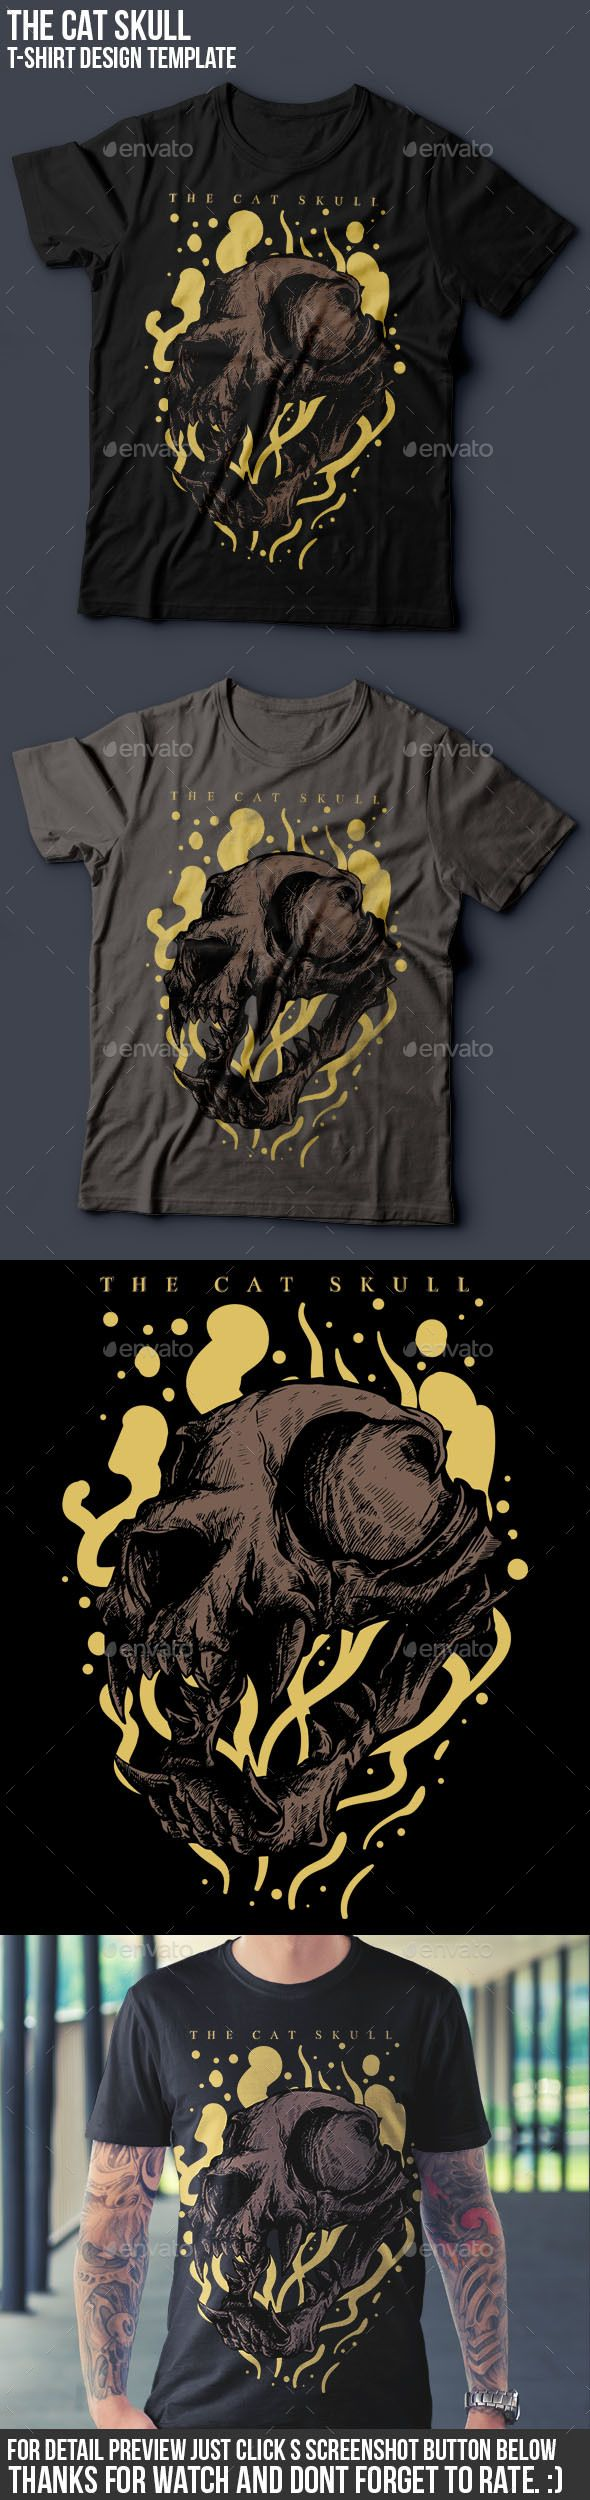 The Cat Skull T-Shirt illustration Design Template PSD. Download here: http://graphicriver.net/item/the-cat-skull-tshirt-design/16048265?ref=ksioks